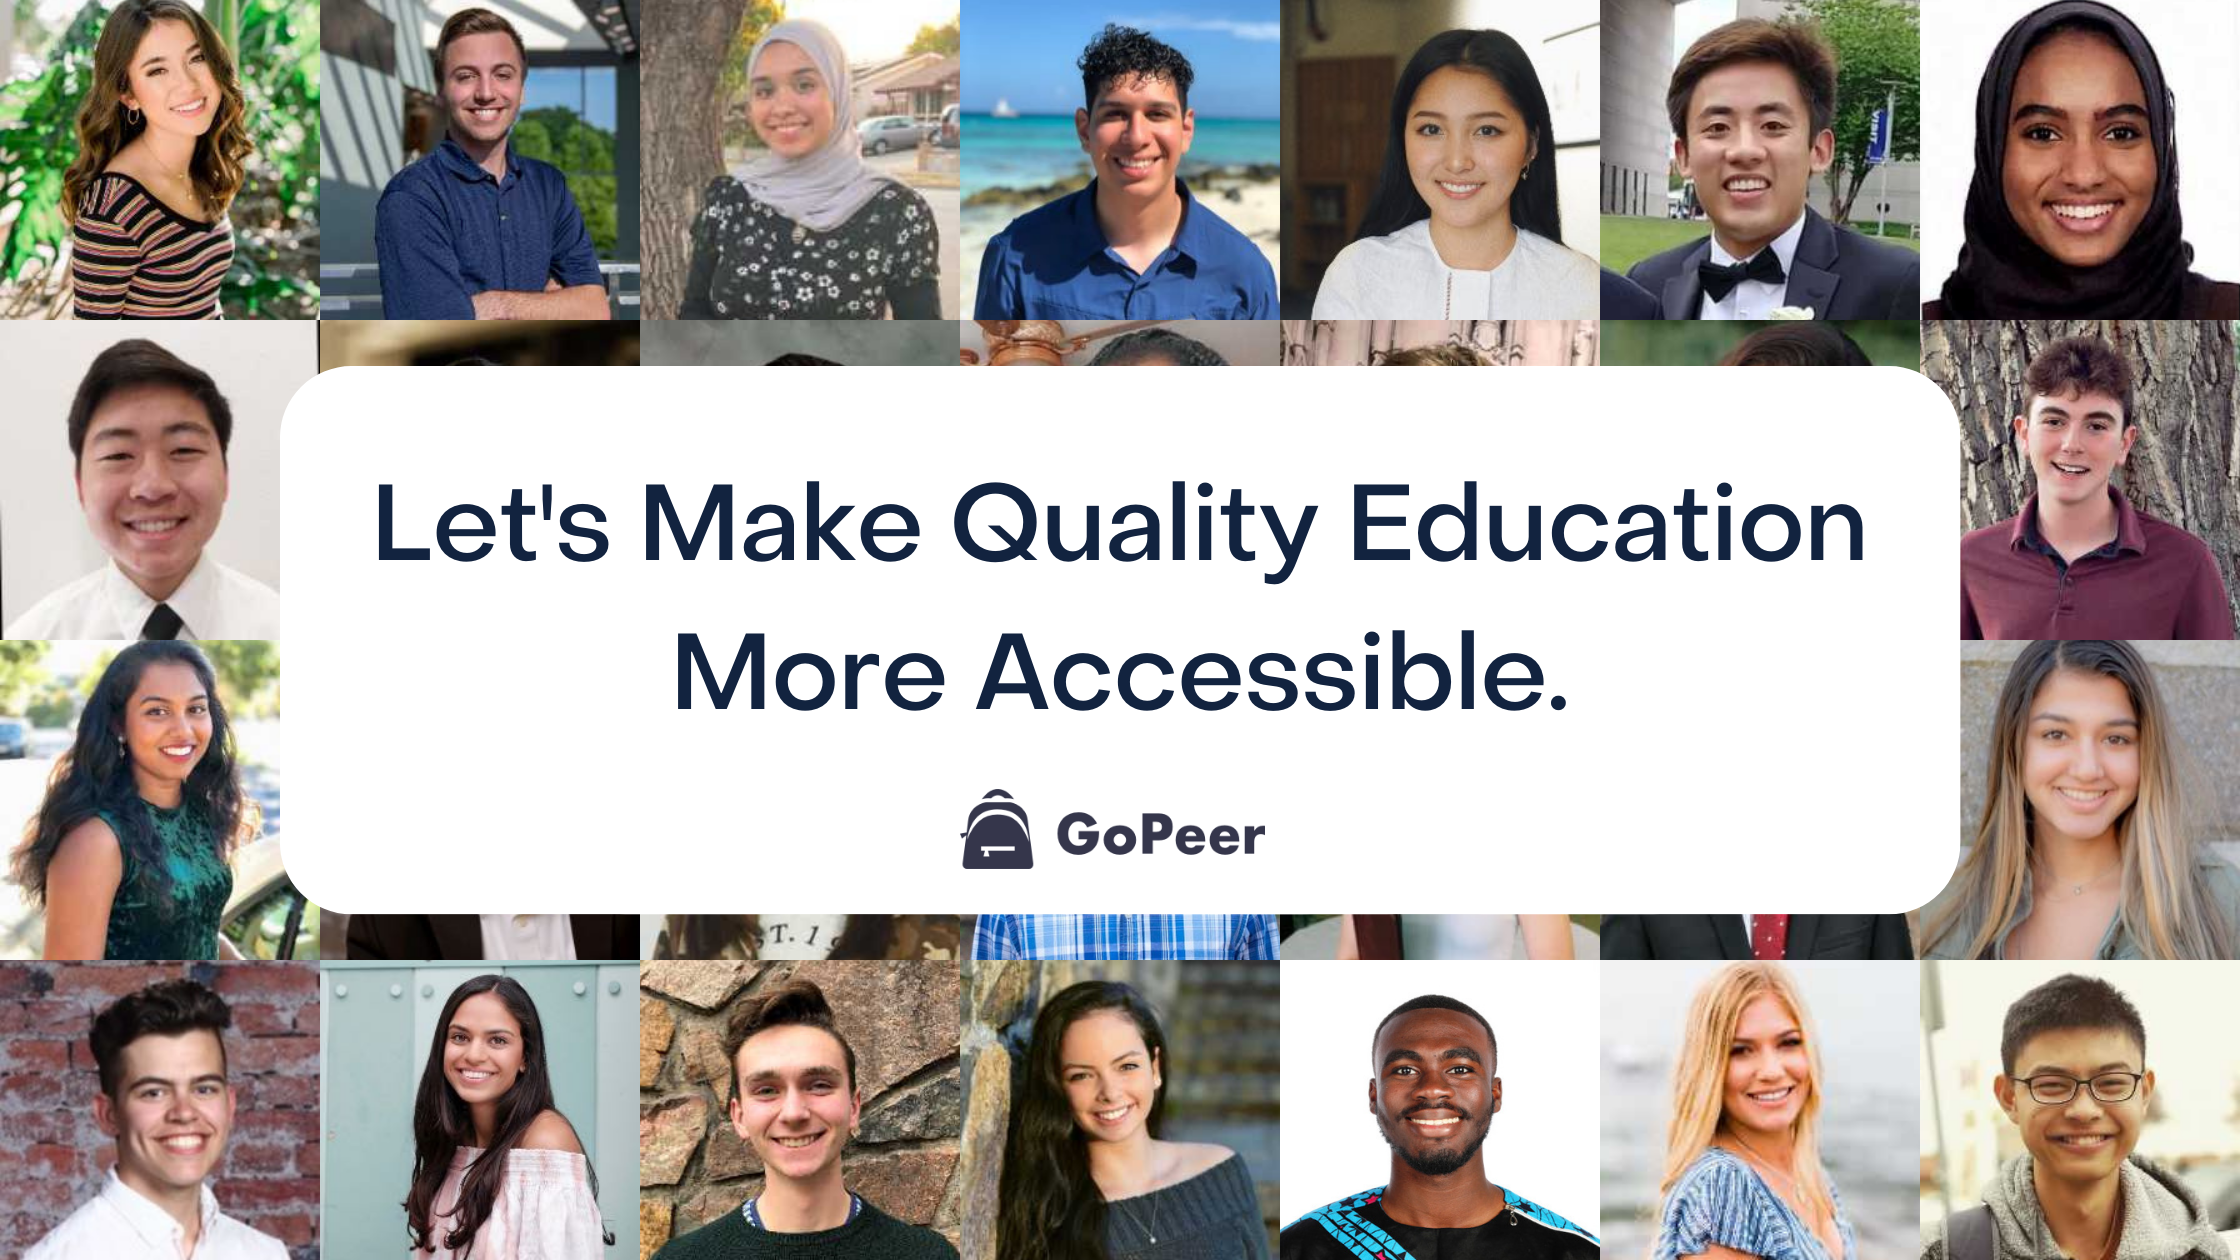 Let's make quality education more accessible for all students